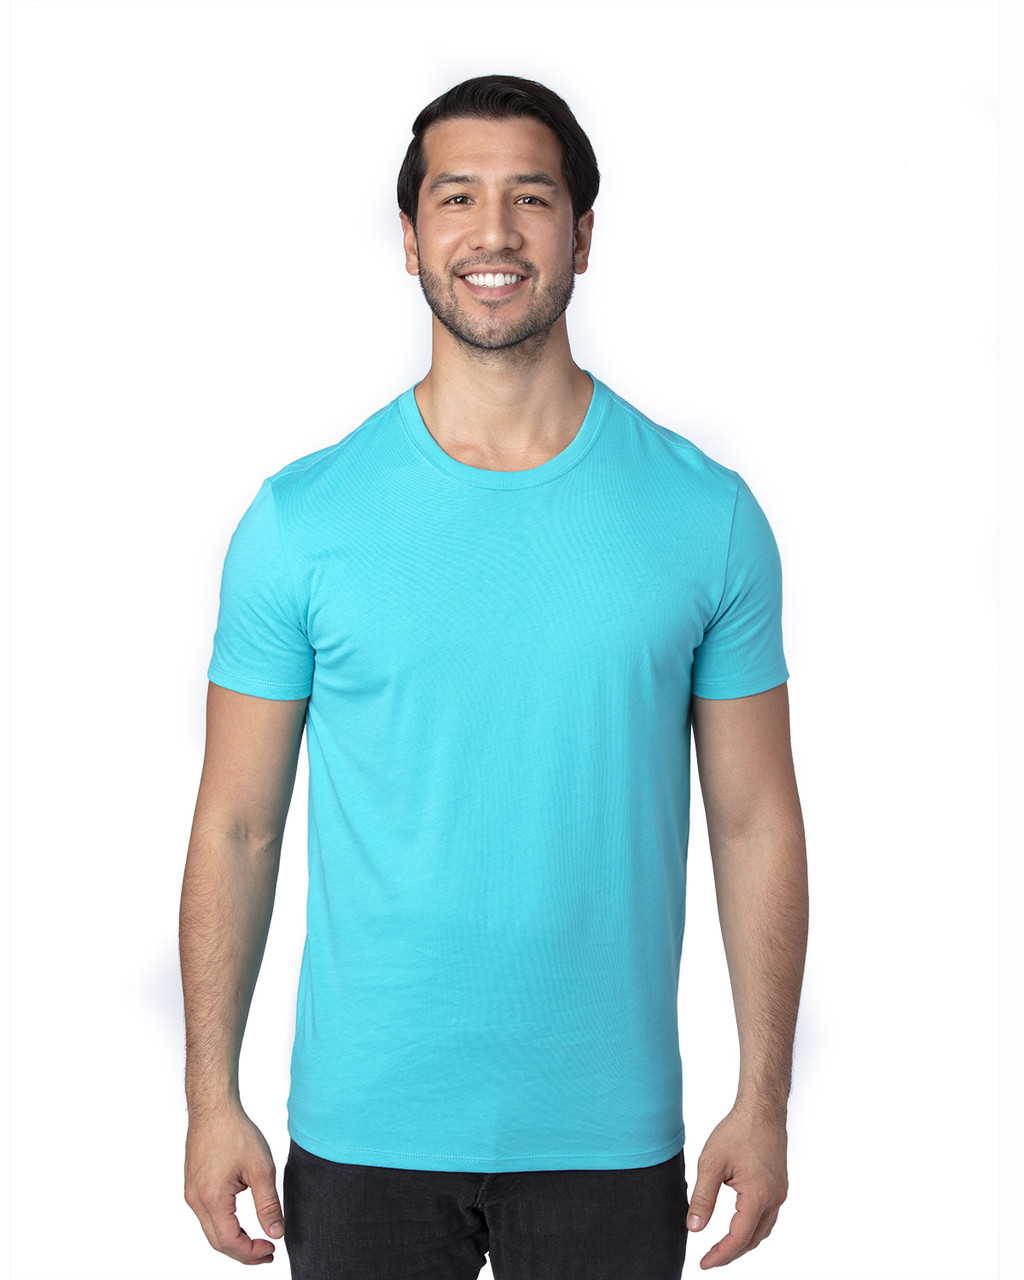 Pacific Blue - 100A Threadfast Unisex Ultimate Short-Sleeve T-Shirt | BlankClothing.ca